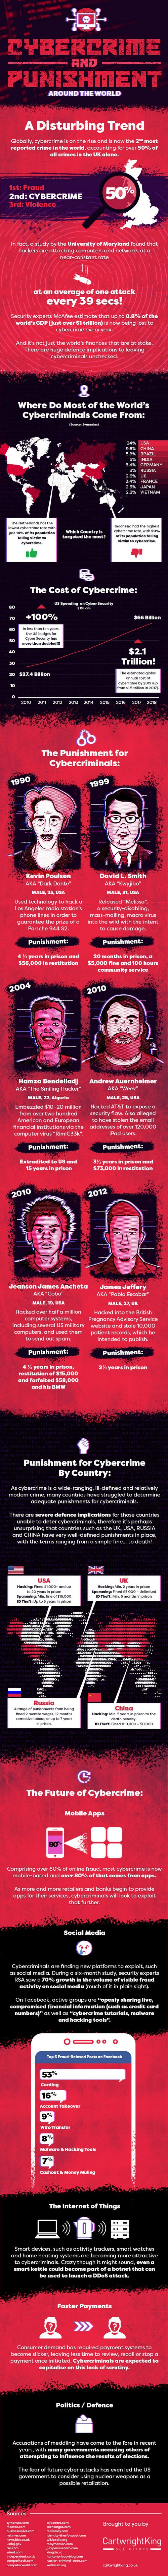 Of Cybercrime, Cybercriminals and Trillion Dollar Losses - Infographic